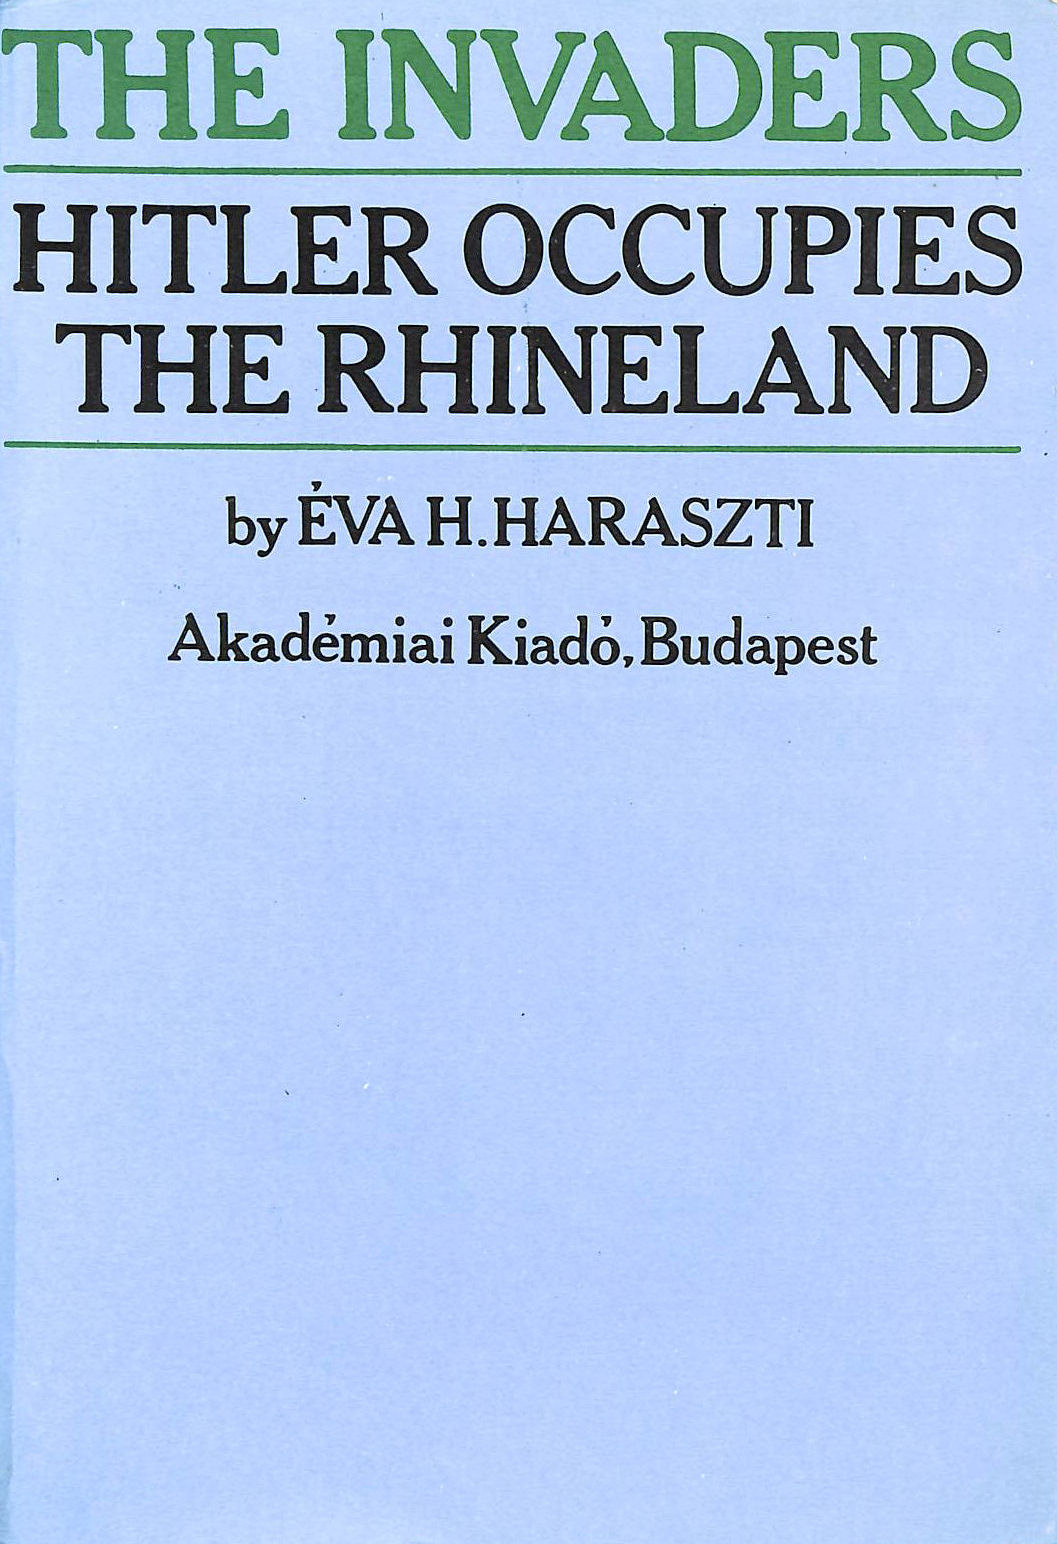 Image for The Invaders, The: Hitler Occupies the Rhineland